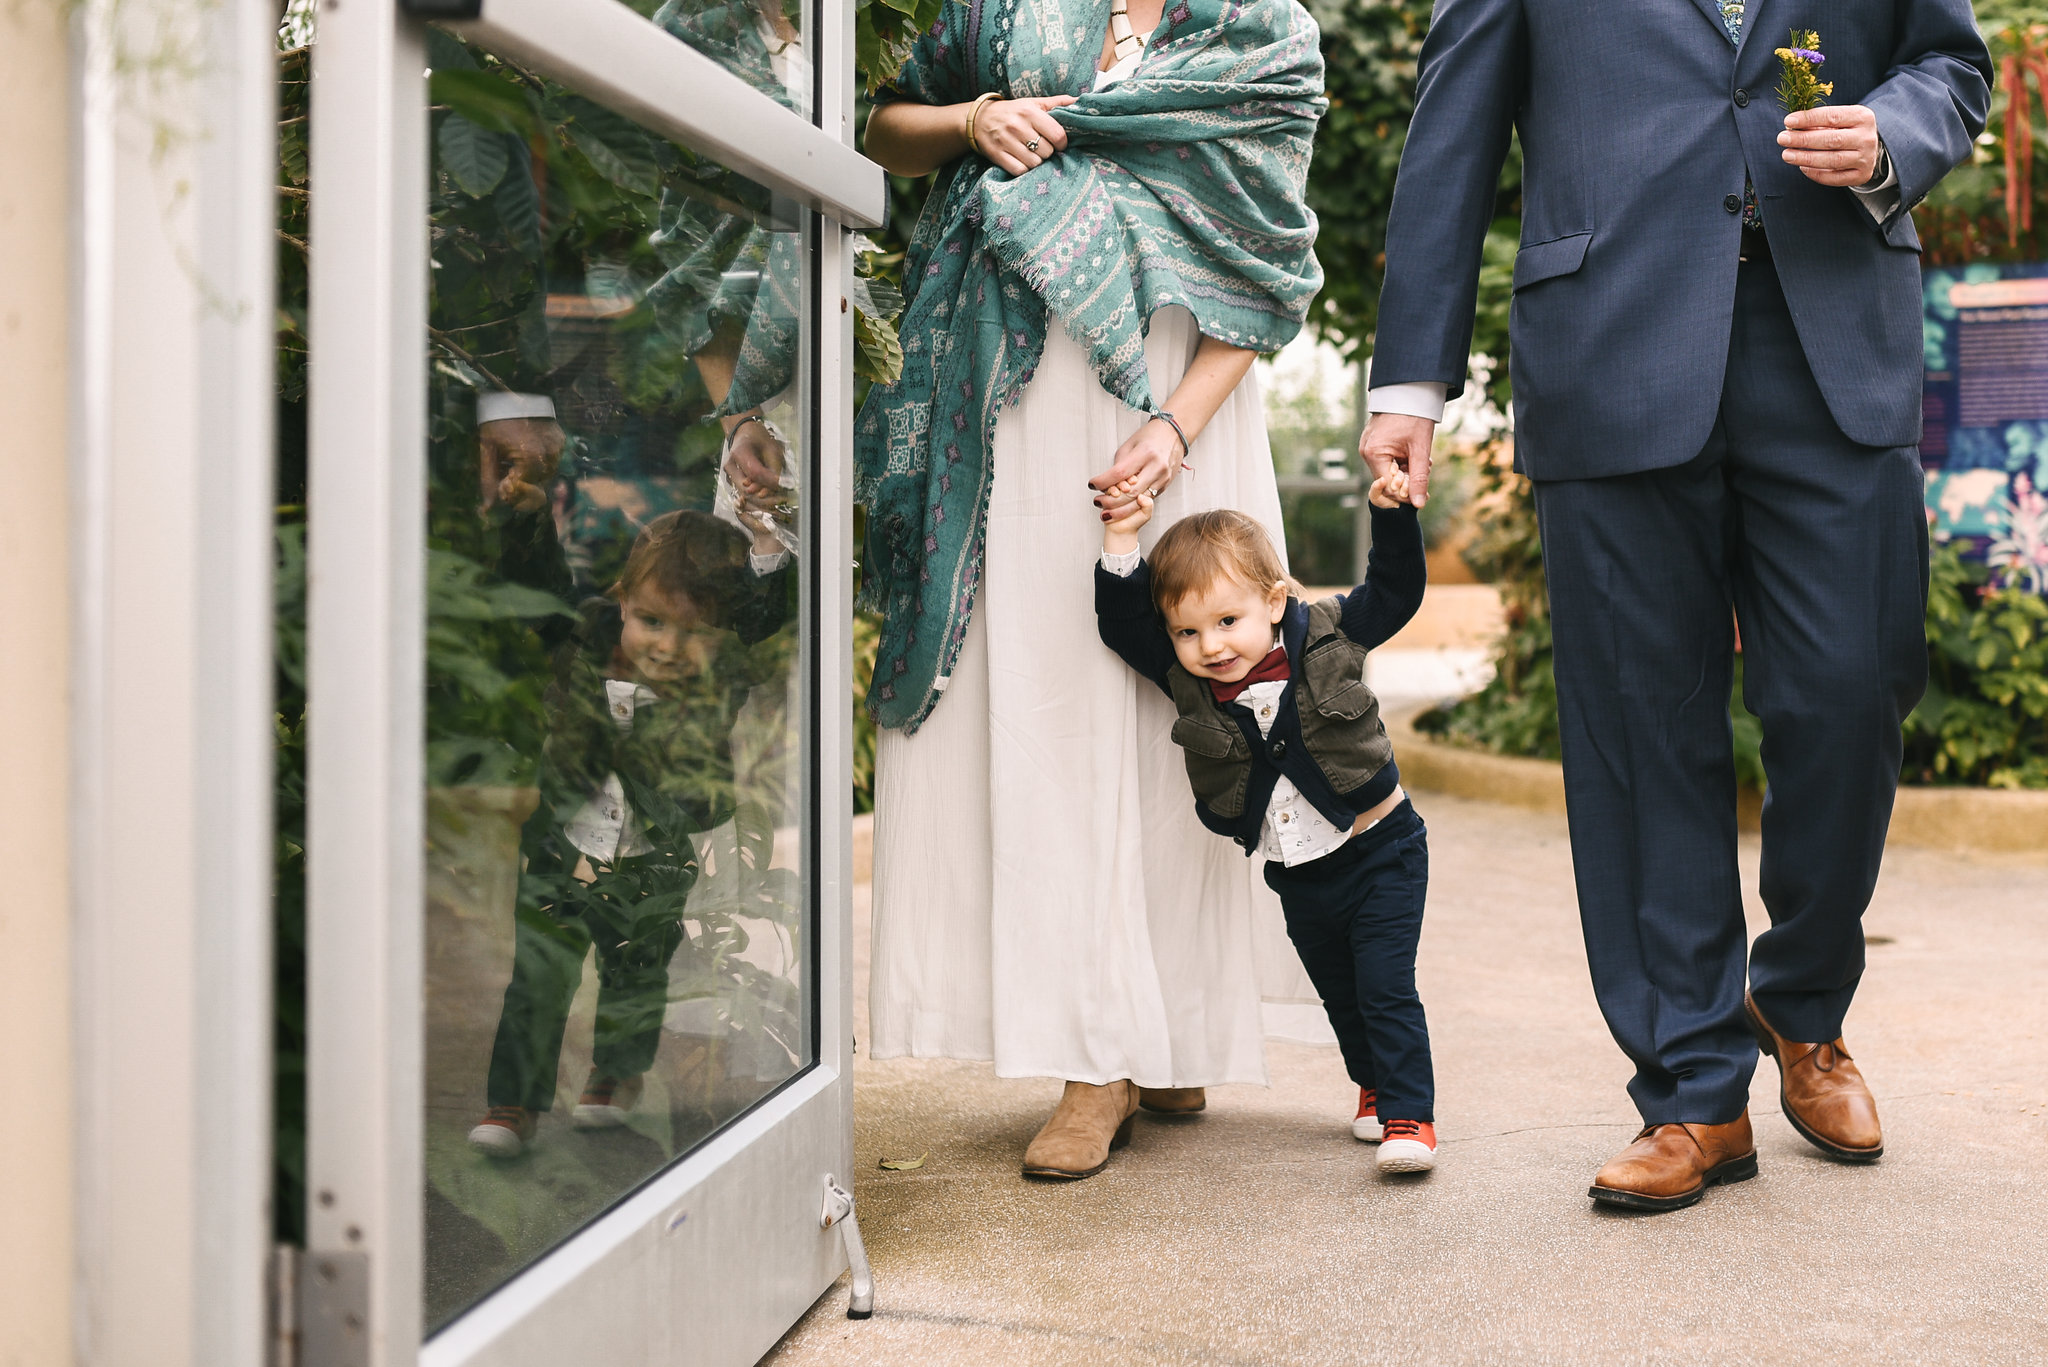 Rawlings Conservatory, Druid Hill Park, Intimate Wedding, Nature, Baltimore Wedding Photographer, Romantic, Classic, Bride and Groom Holding Hands on Infant Son, Sweet Family Photo